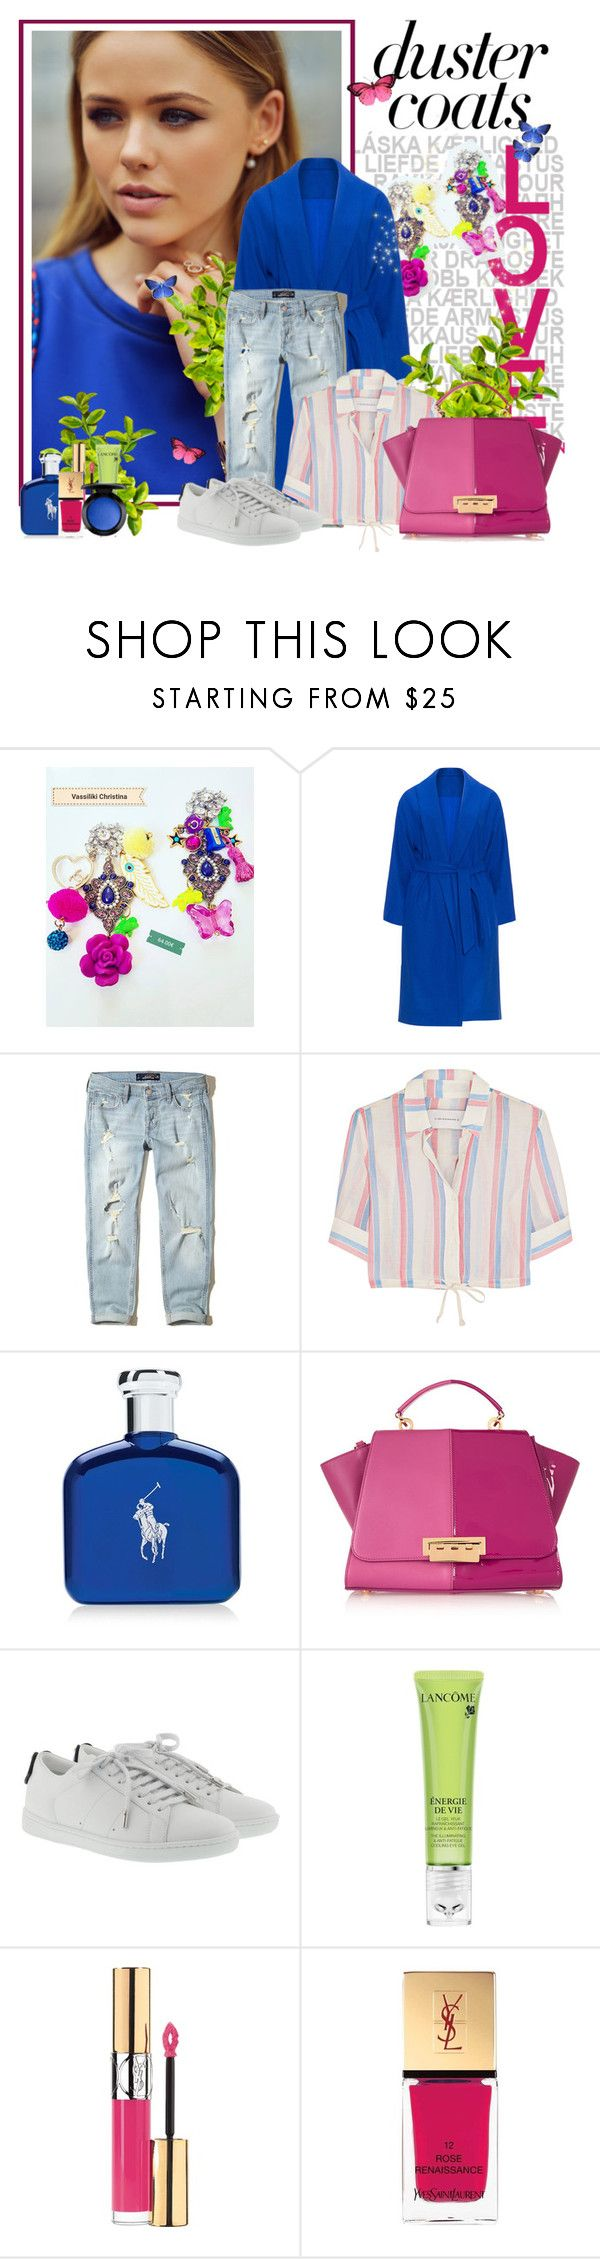 """""""Long Layers: Royal Blue Duster Coat"""" by croatia ❤ liked on Polyvore featuring Hollister Co., Solid & Striped, Ralph Lauren, ZAC Zac Posen, Yves Saint Laurent, Lancôme, MAC Cosmetics, boho, earrings and RoyalBlue"""